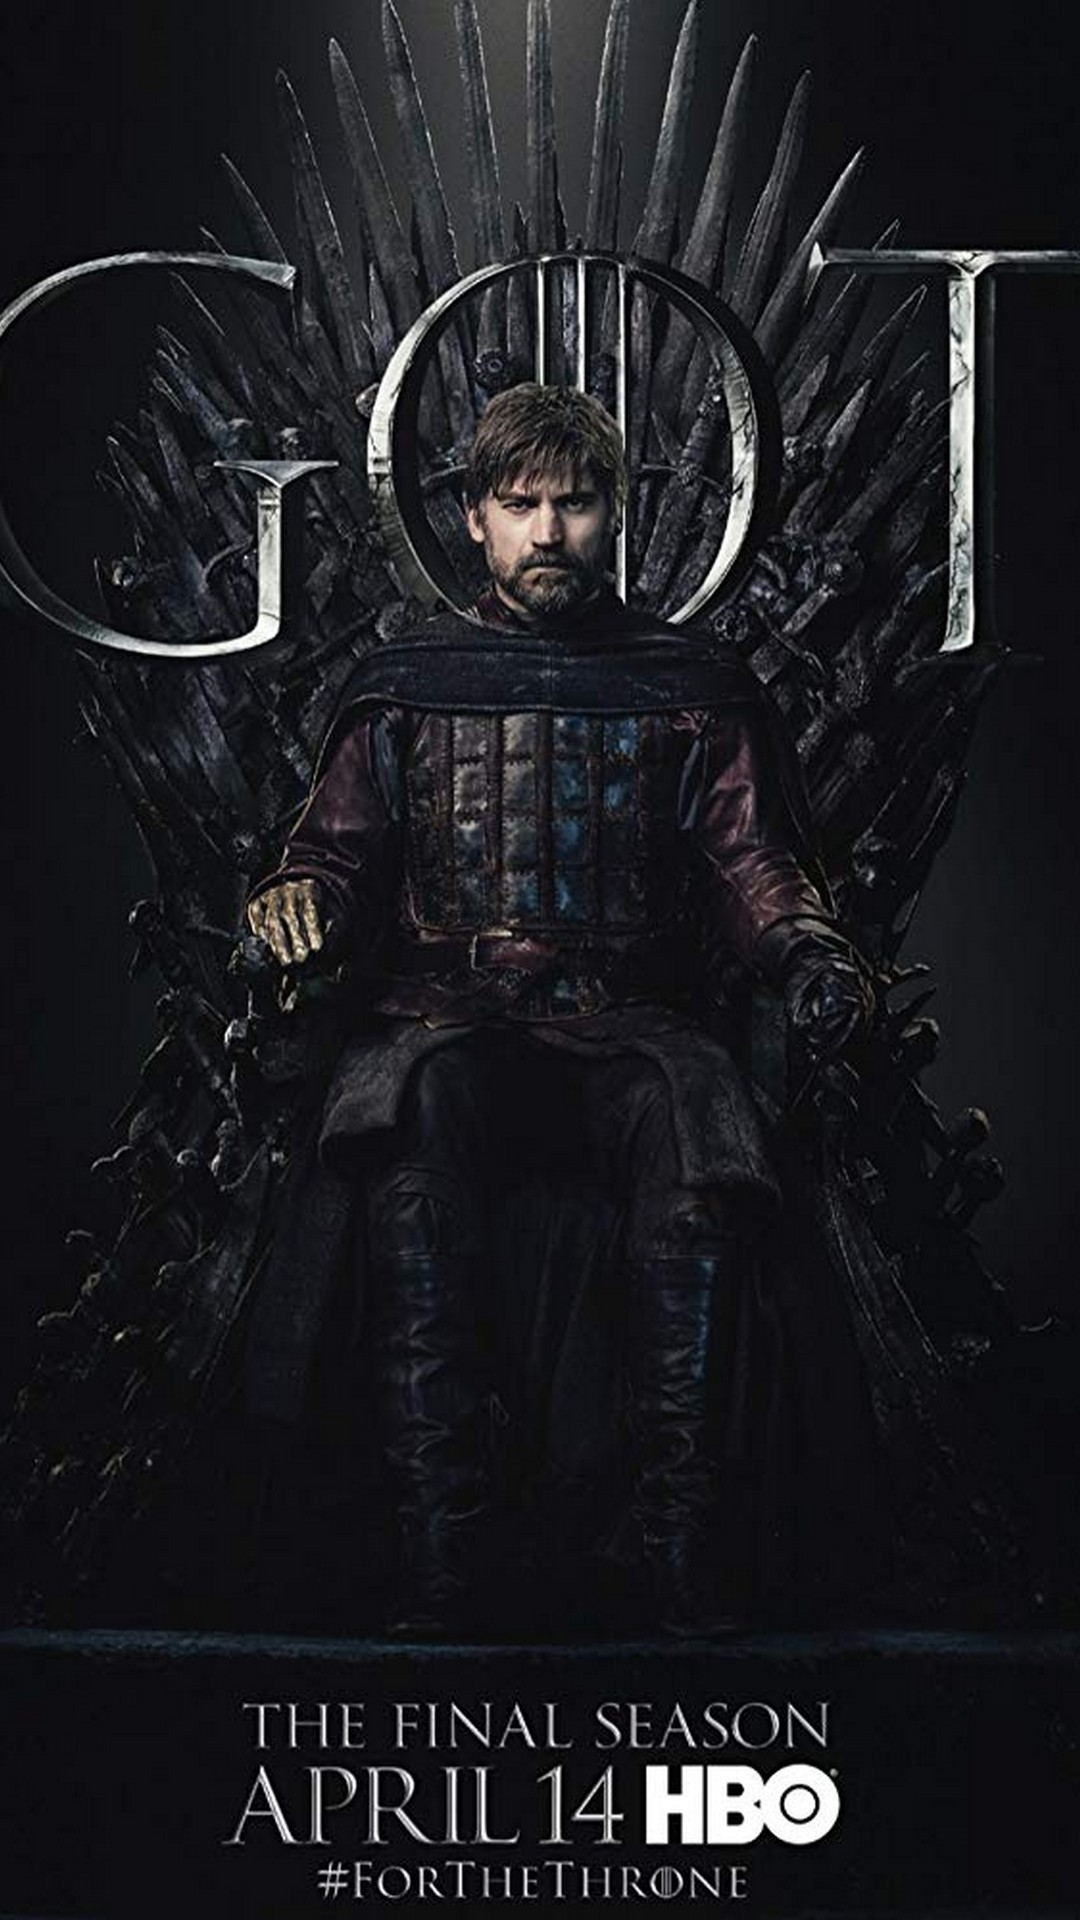 Game of Thrones Season 8 Poster HD 2019 Movie Poster Wallpaper HD 1080x1920